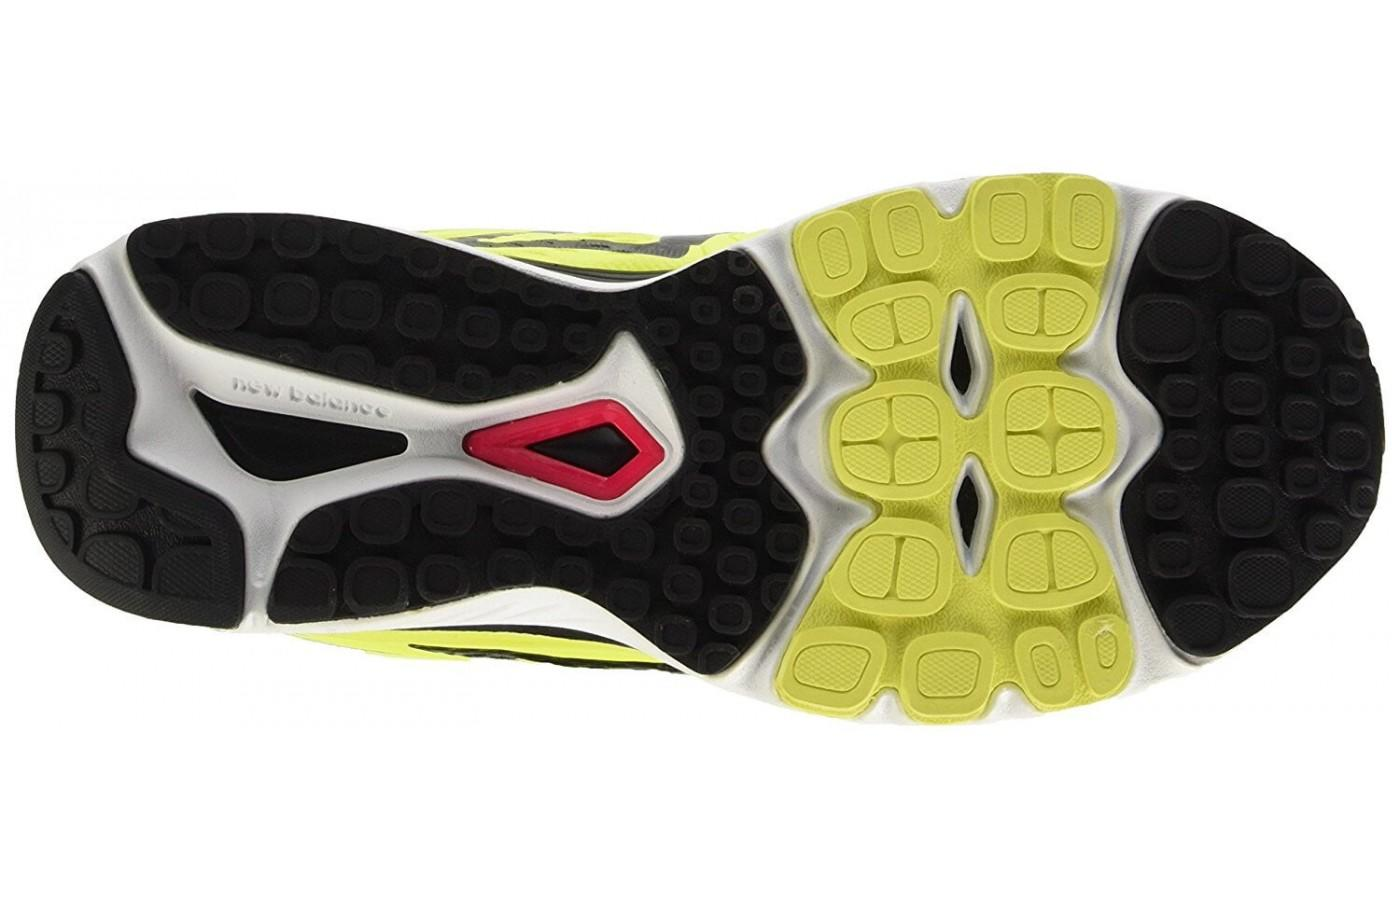 Outsole of the New Balance 880 V7 is made of blown rubber